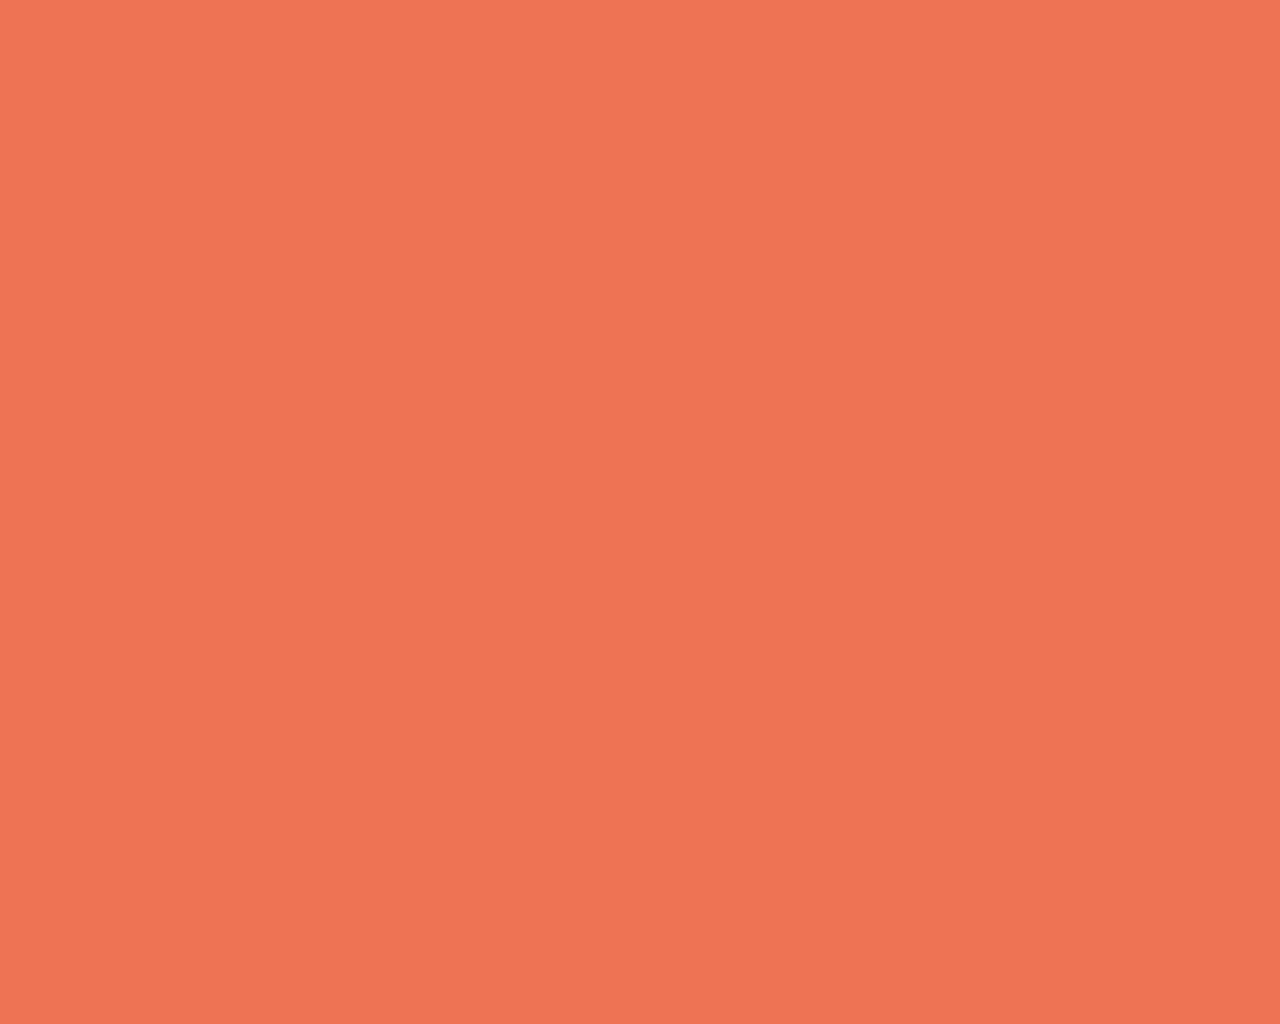 1280x1024 Light Red Ochre Solid Color Background